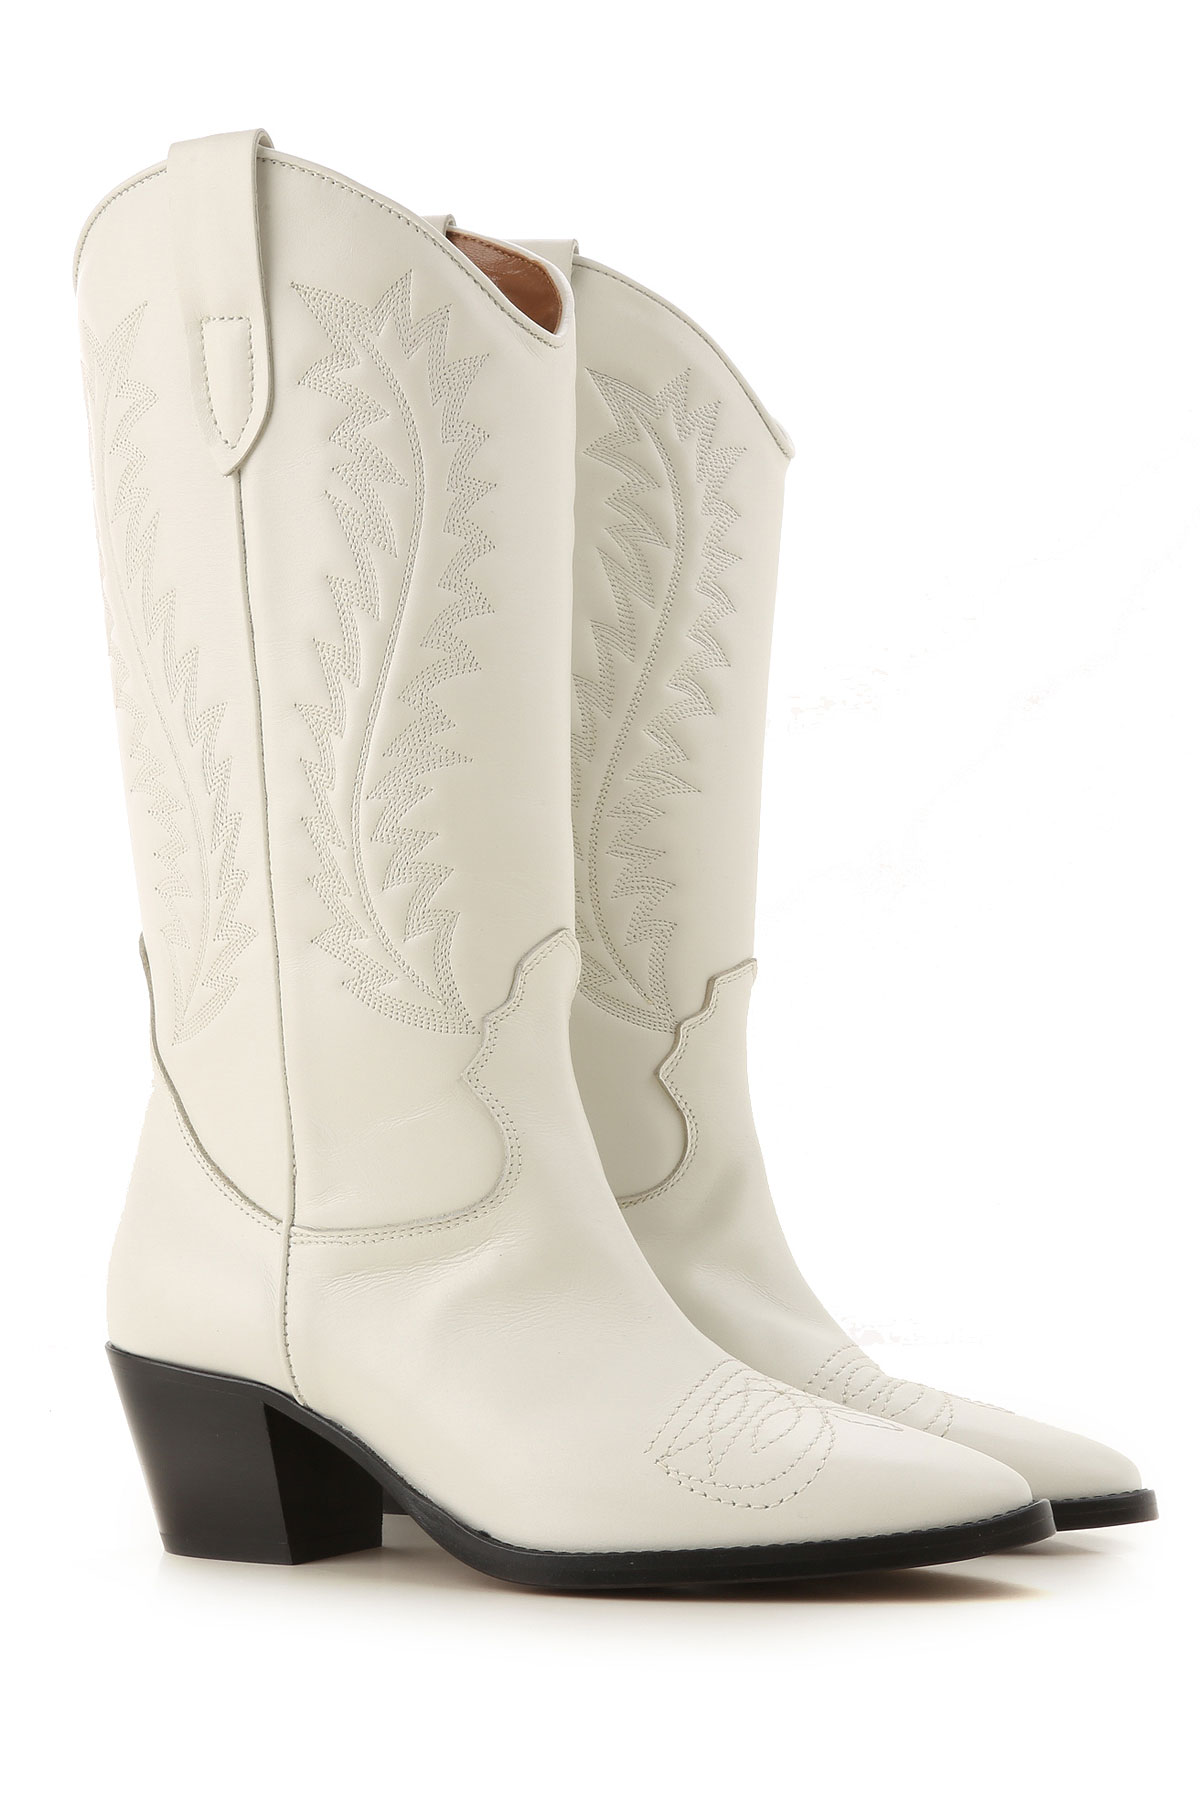 Paris Texas Boots for Women, Booties On Sale in Outlet, White, Leather, 2019, 6 7